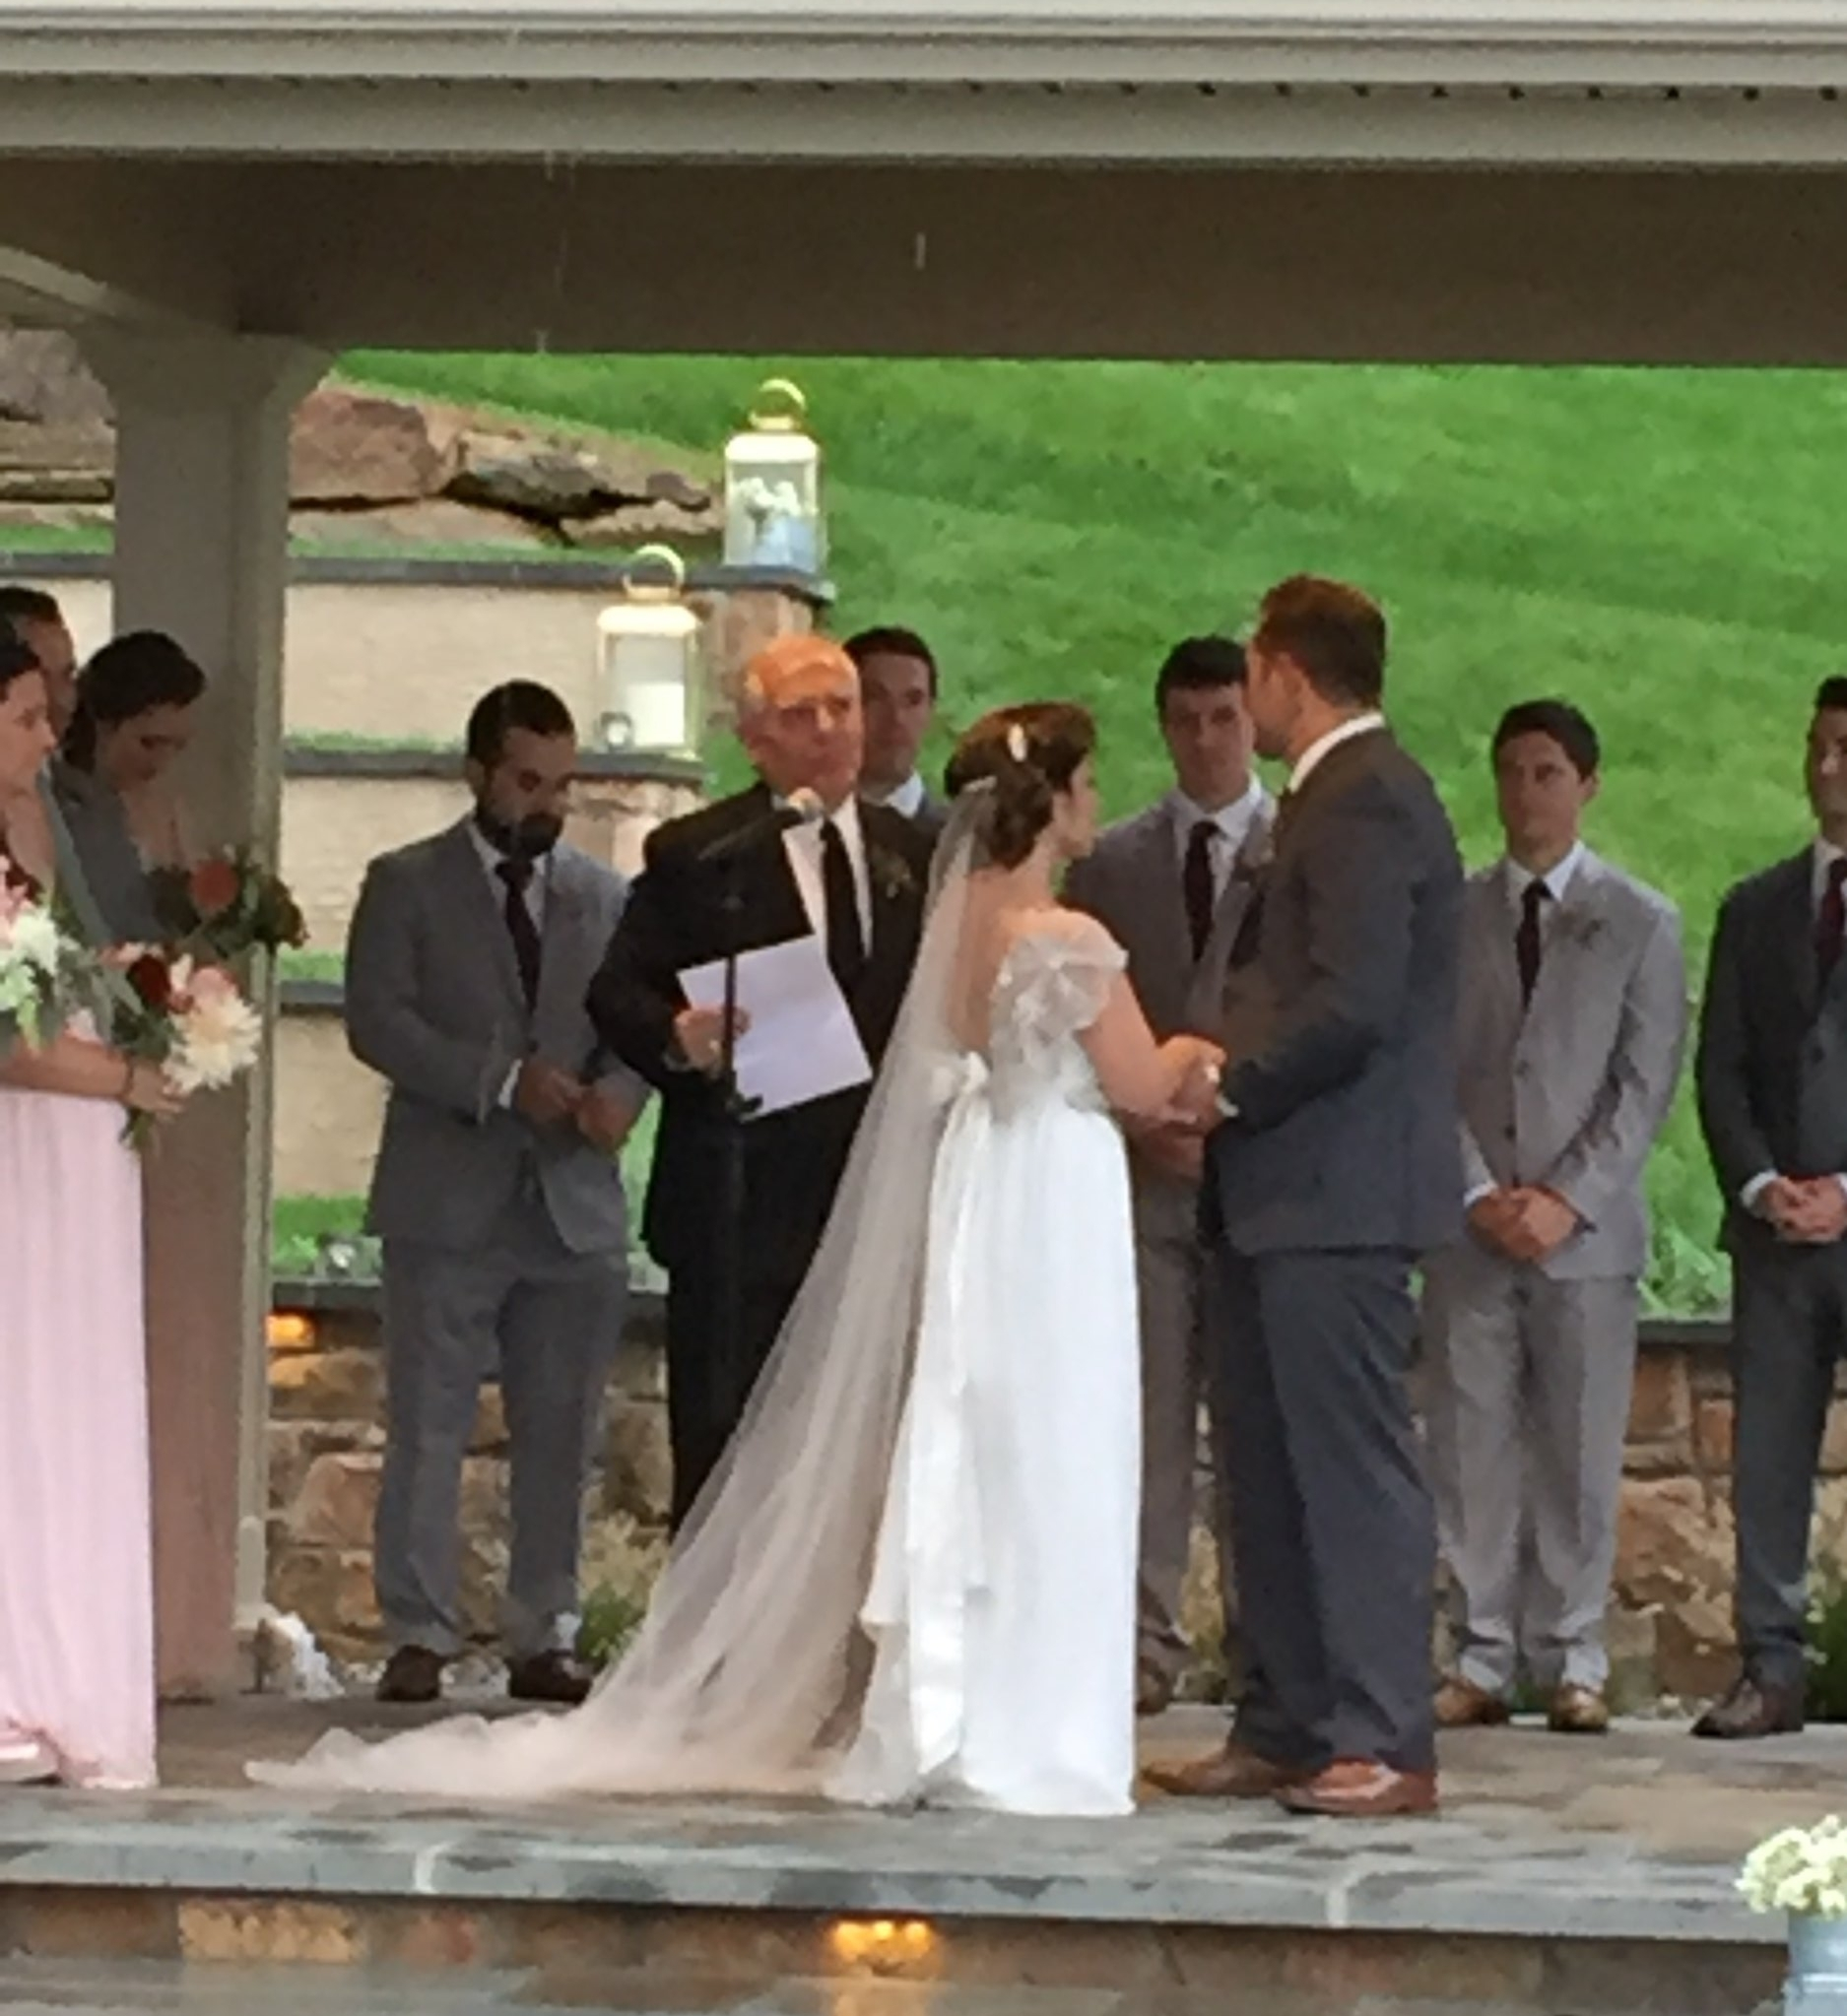 Yianilos Wedding Ceremony 3.jpg